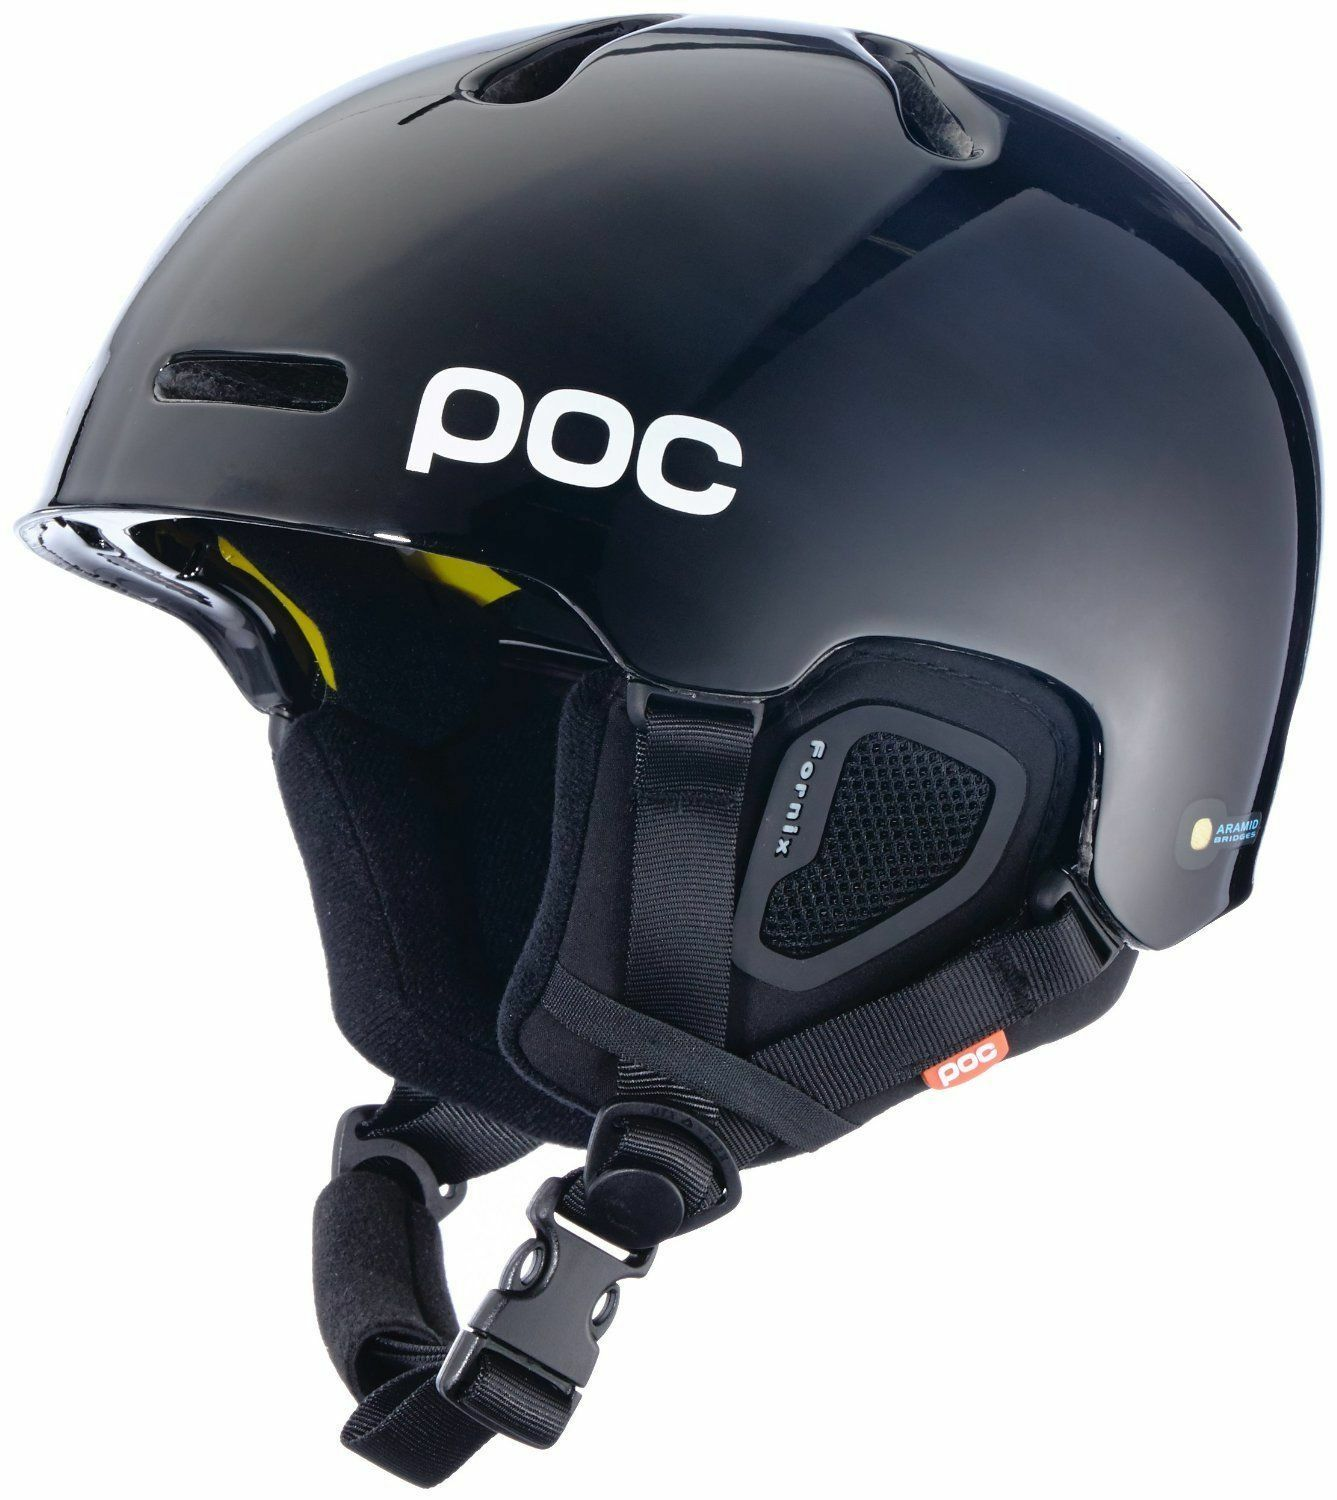 Poc Fornix Backcountry Mips Recco Casco   XS-S 51-54cm   Helmet Esqui Ski Snow